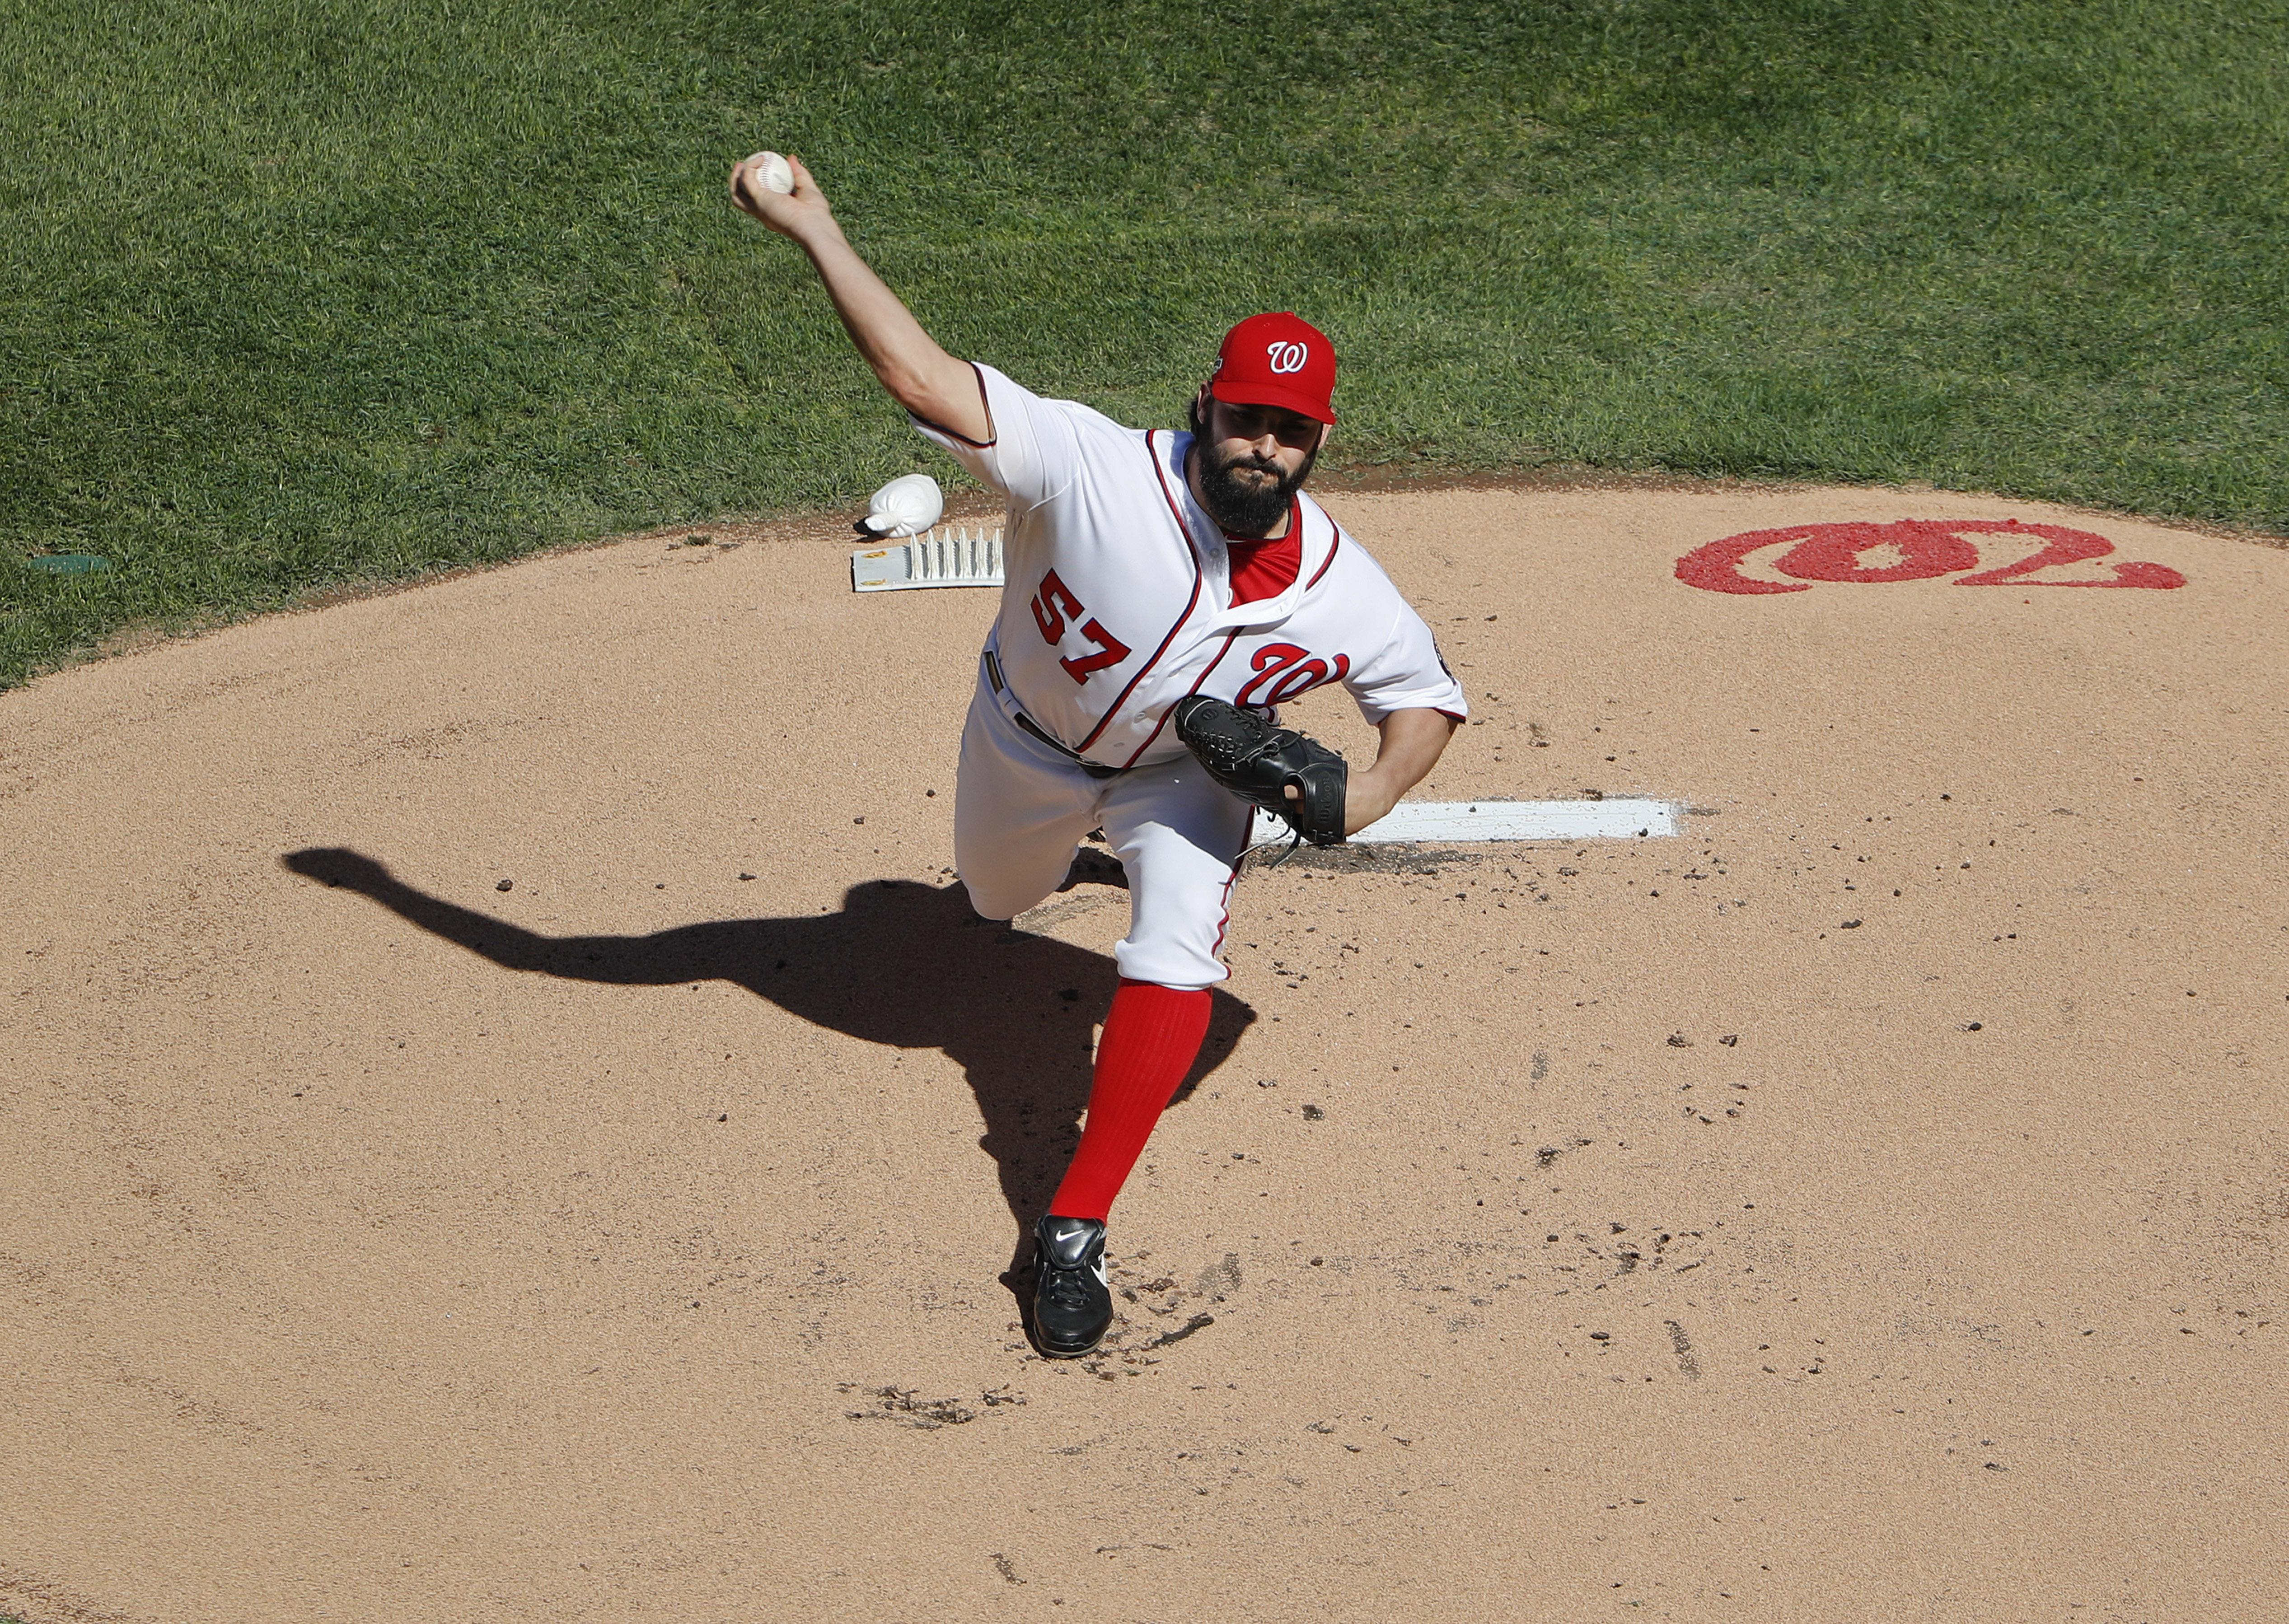 Nationals_baseball_roark_91138